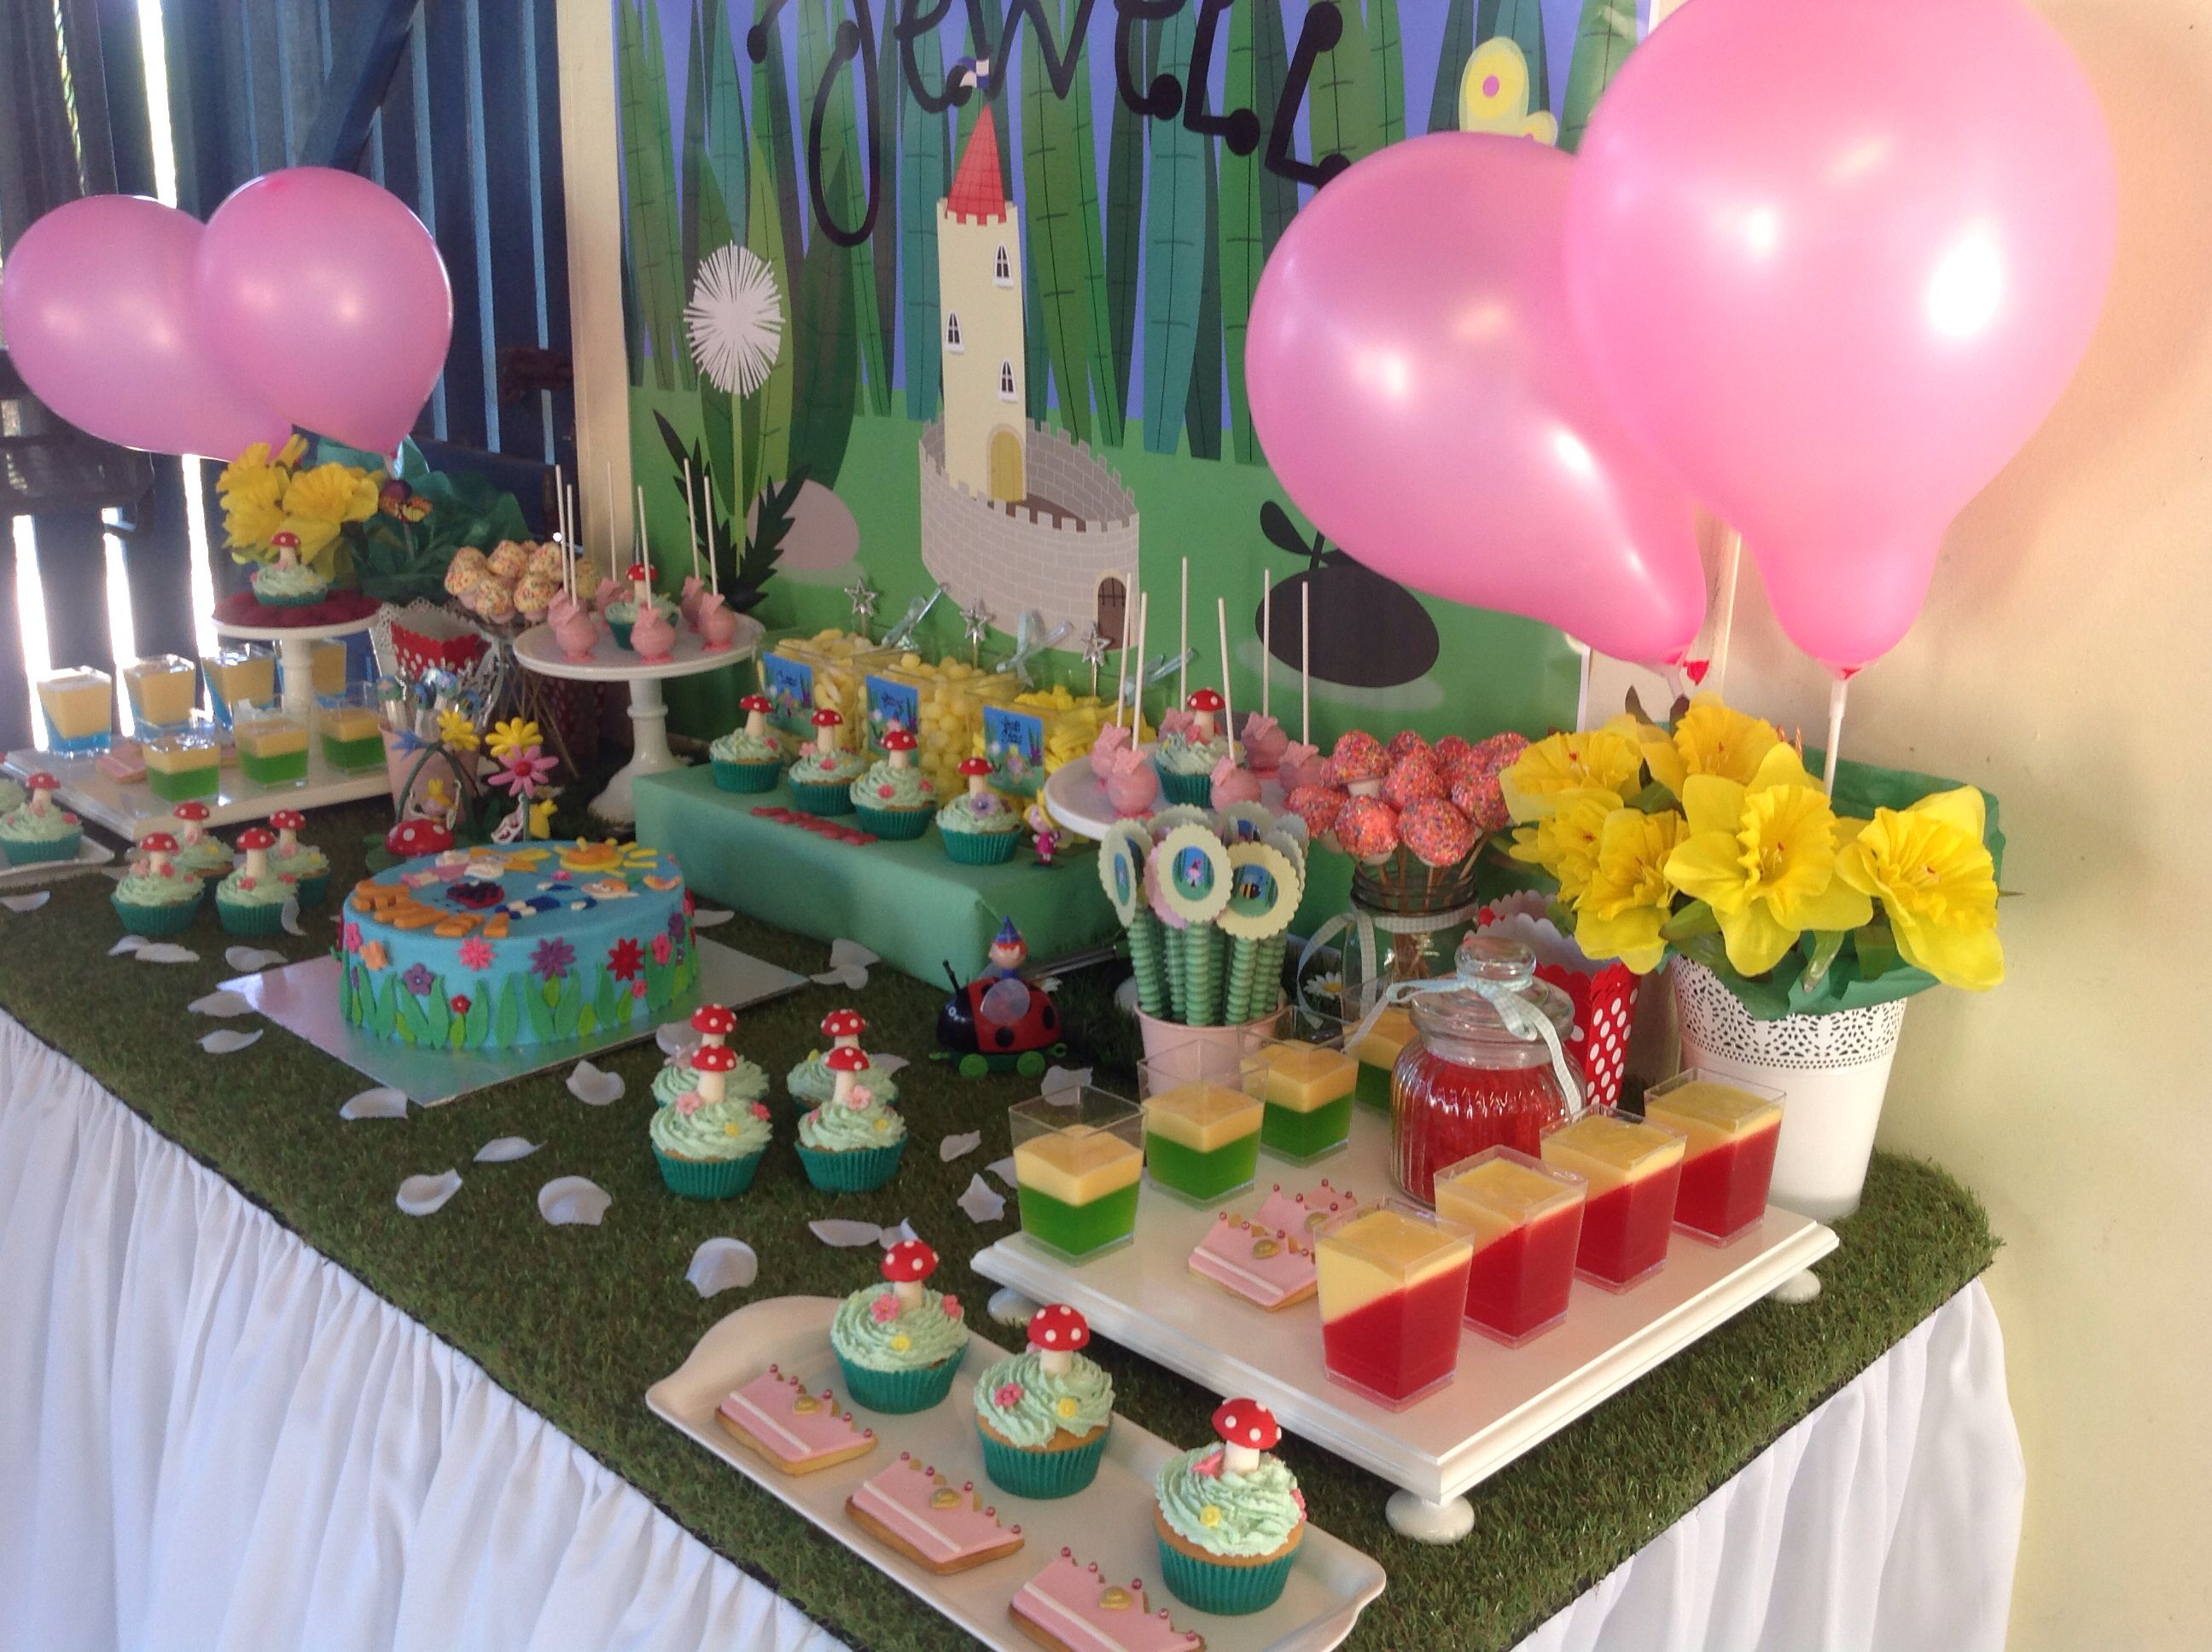 Ben And Holly Party Ben And Holly Birthday Party Ben Holly